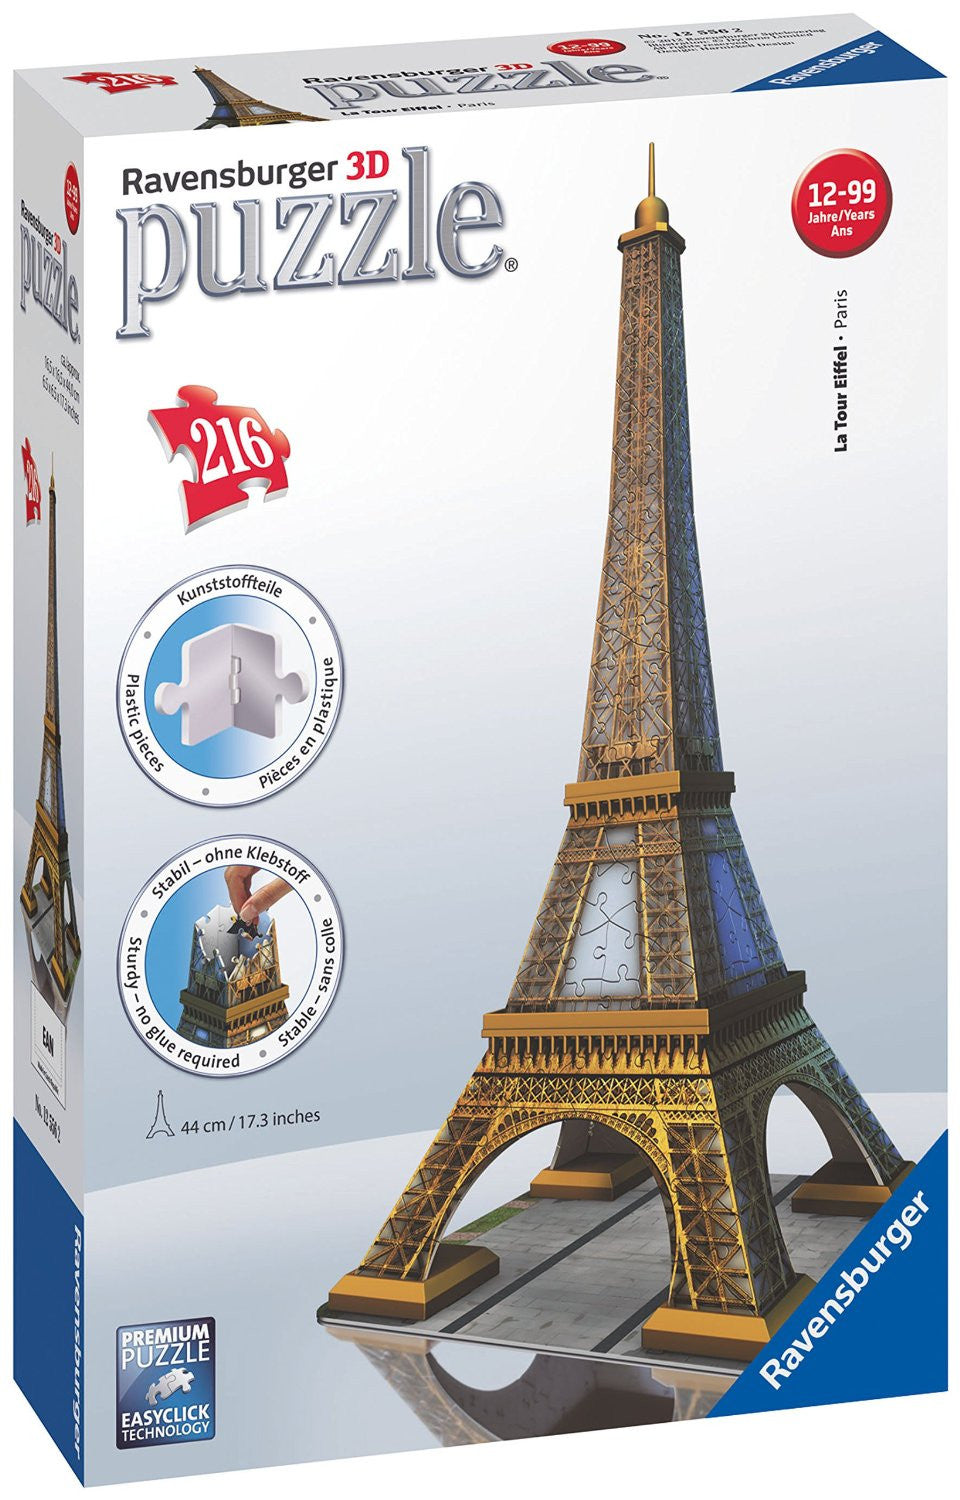 Ravensburger 3D Puzzles Eiffel Tower 12556